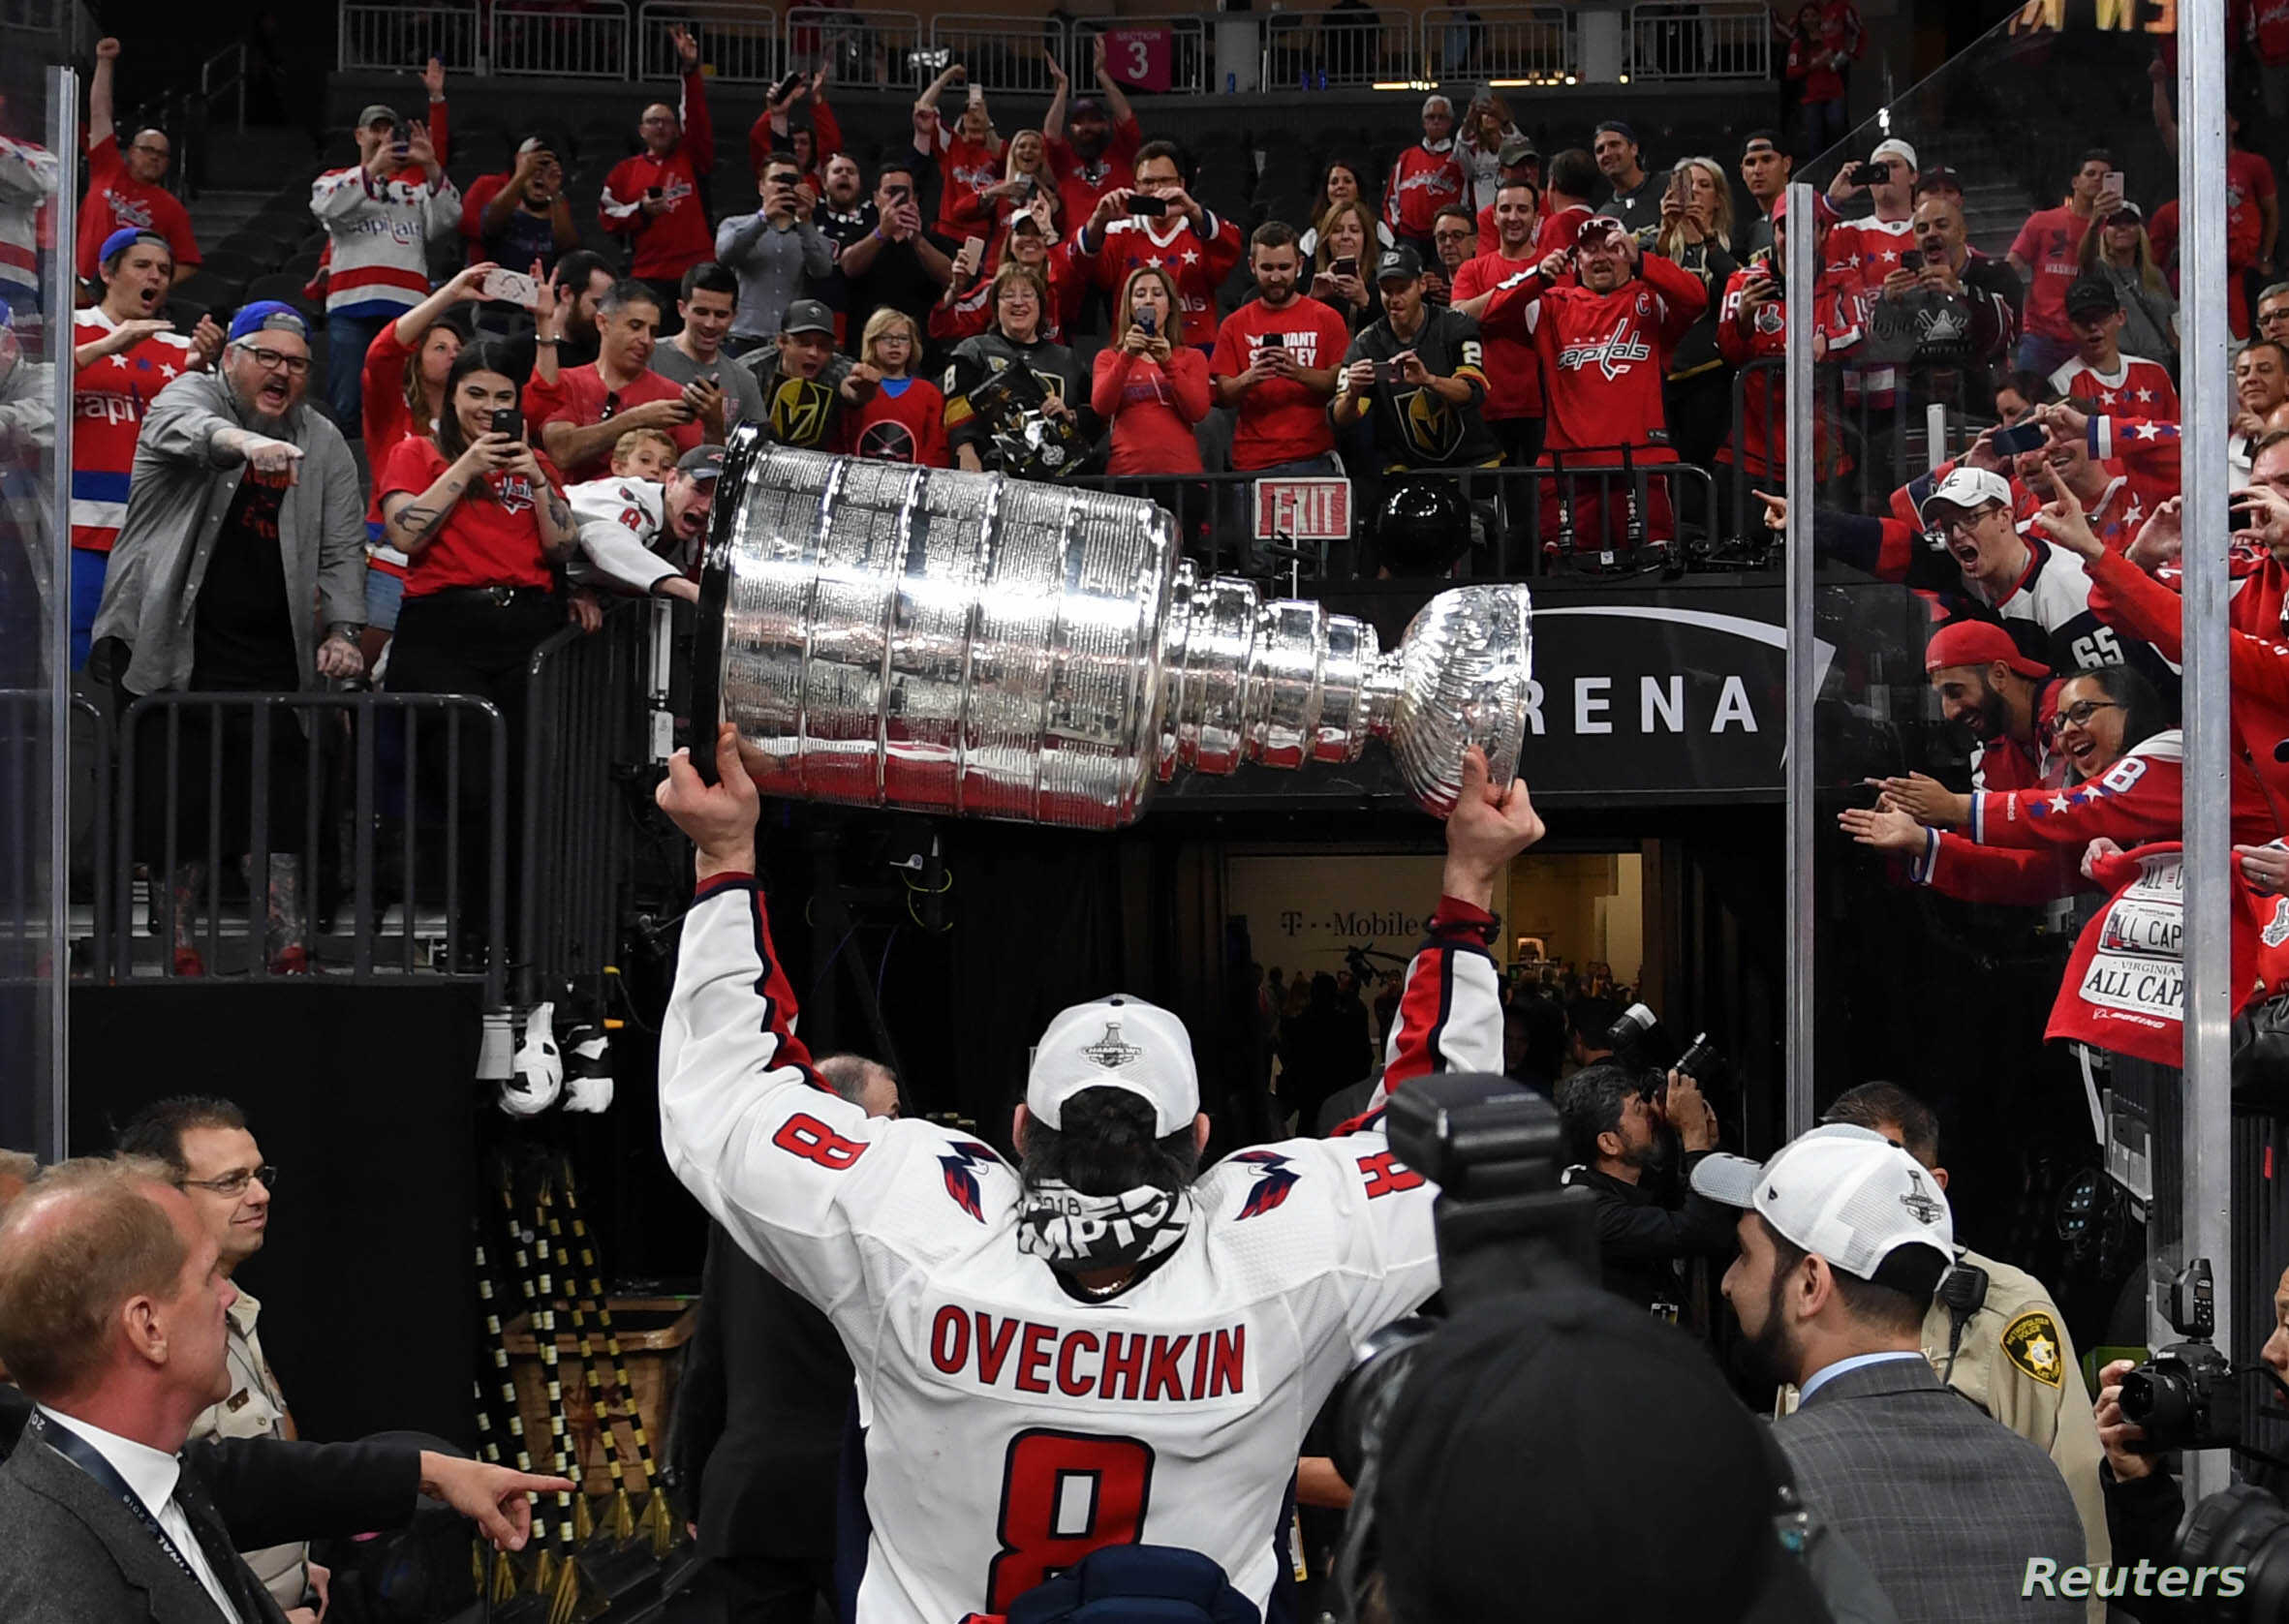 Washington Capitals Win First Stanley Cup Voice Of America English